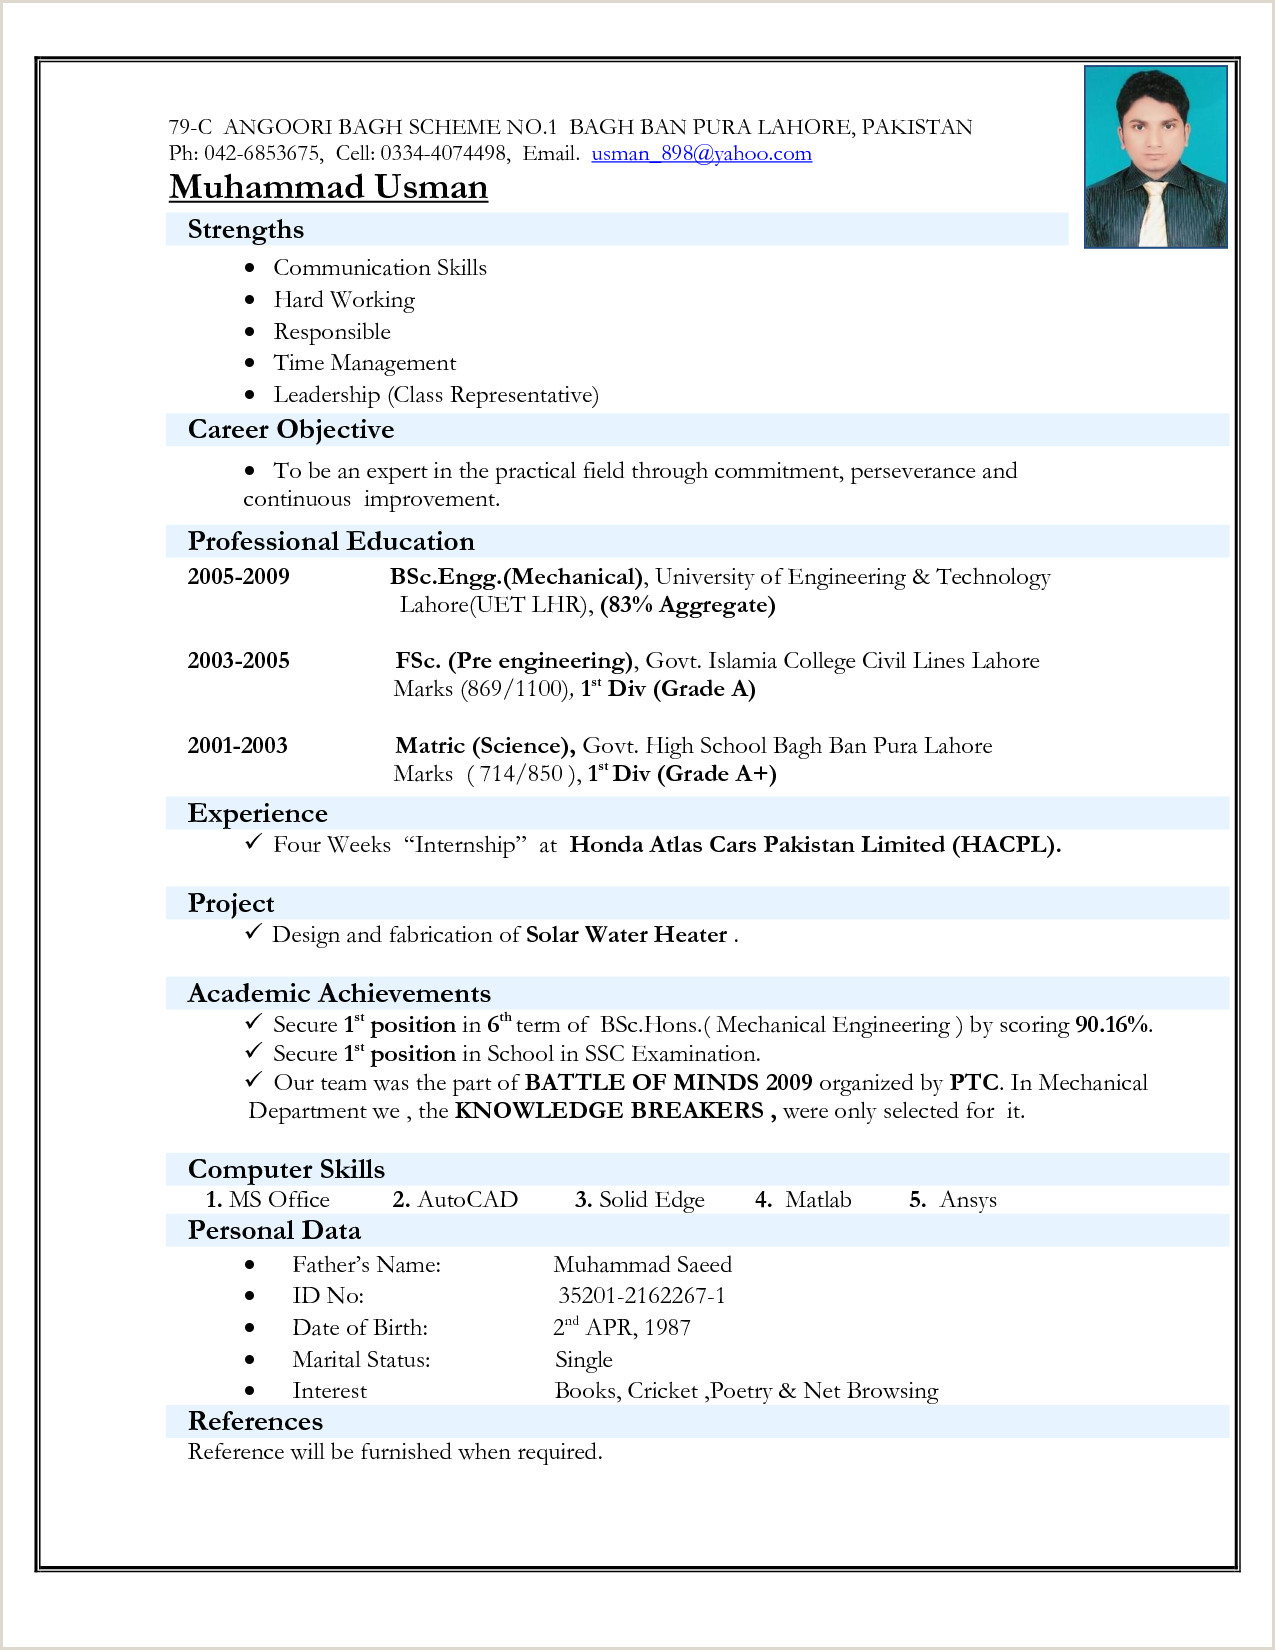 Cv Format Download For Freshers Engineer Pin By Aa Abhimanyu On Resumes